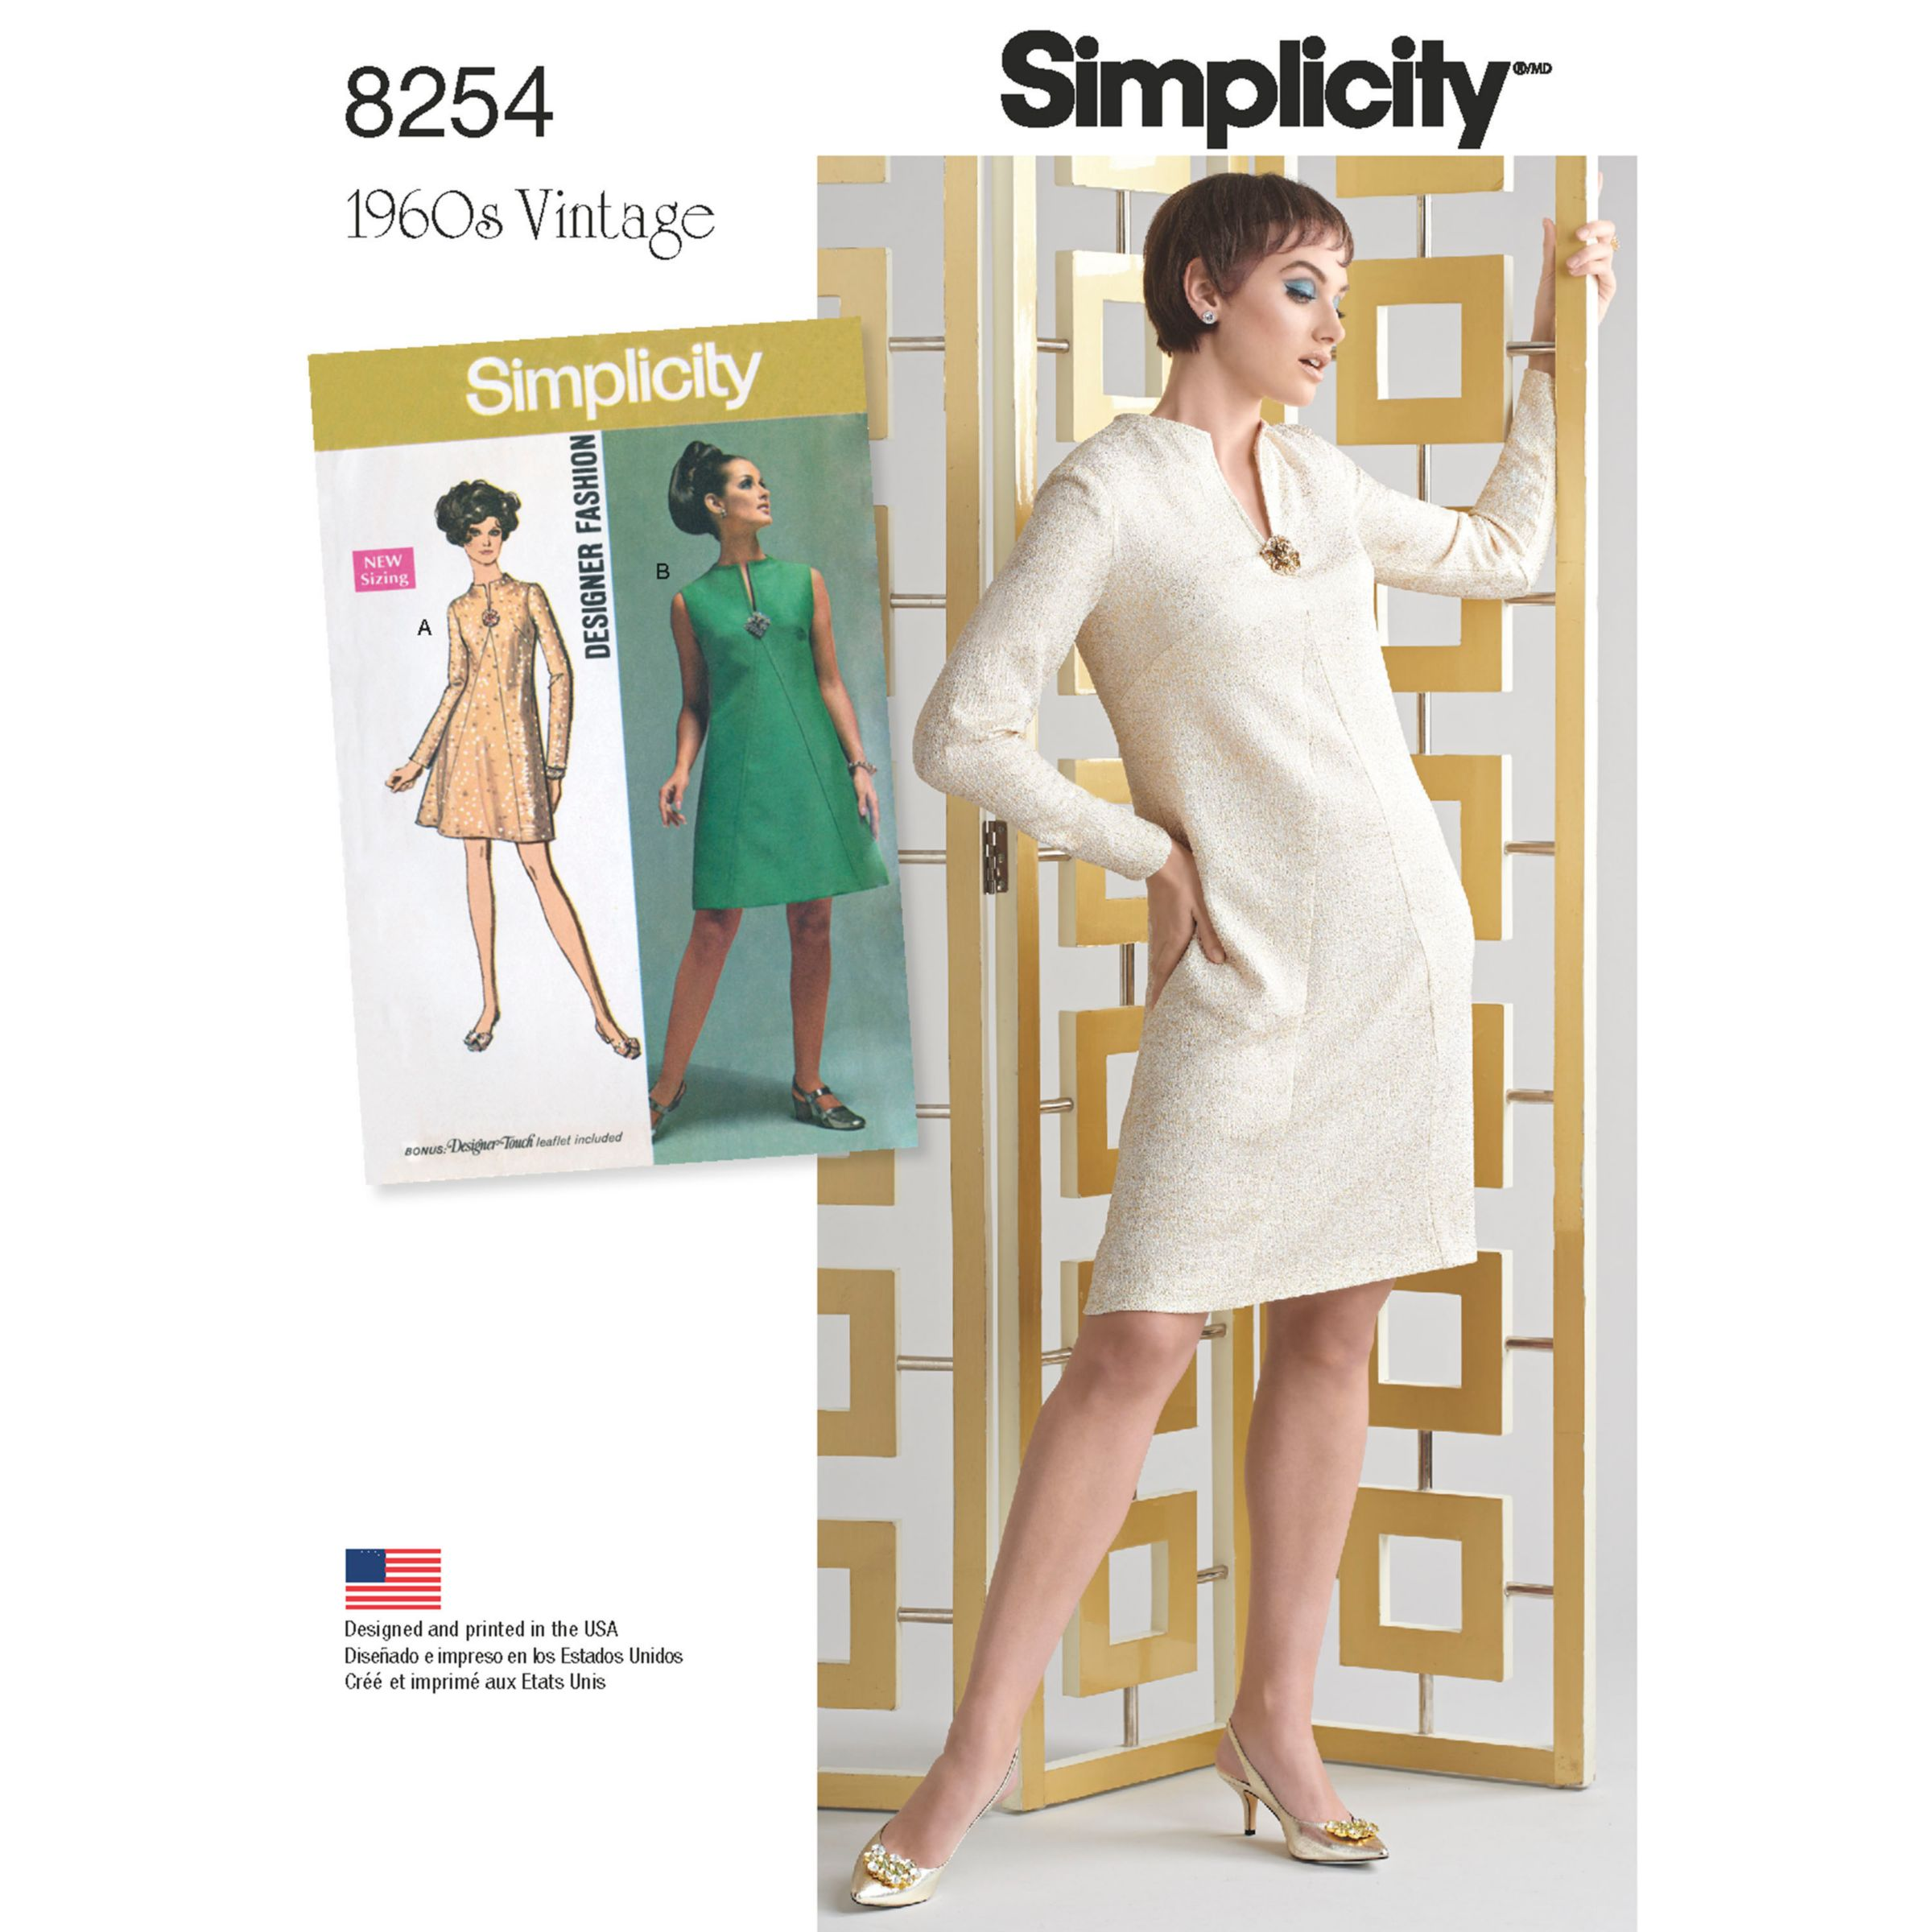 Simplicity Simplicity Vintage Women's and Plus Size 1960s Dresses Sewing Pattern, 8254